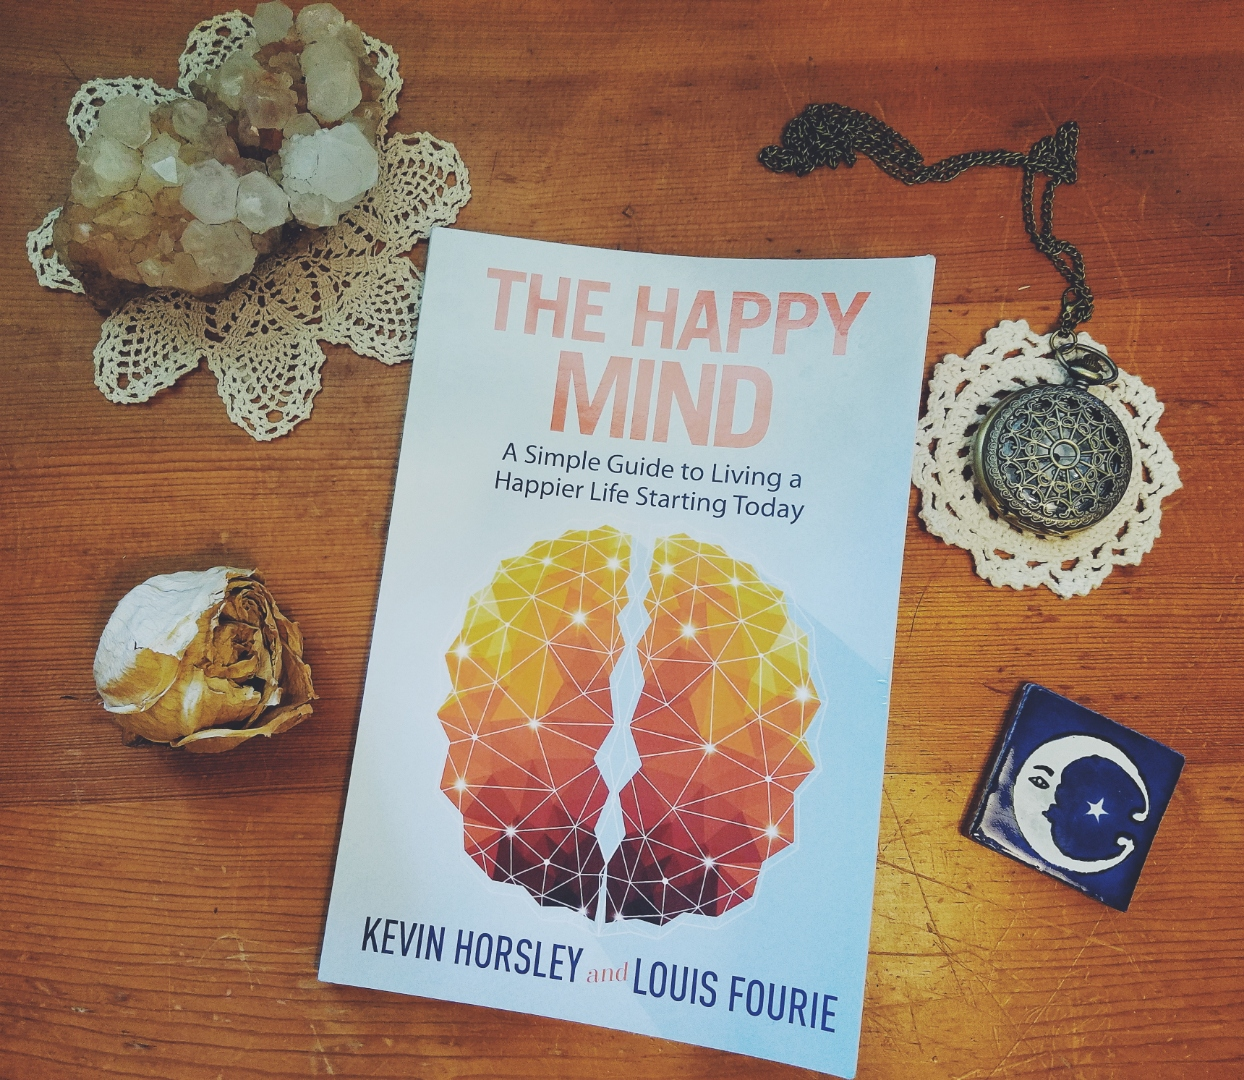 Book Review: The Happy Mind by Kevin Horsley and Louis Fourie